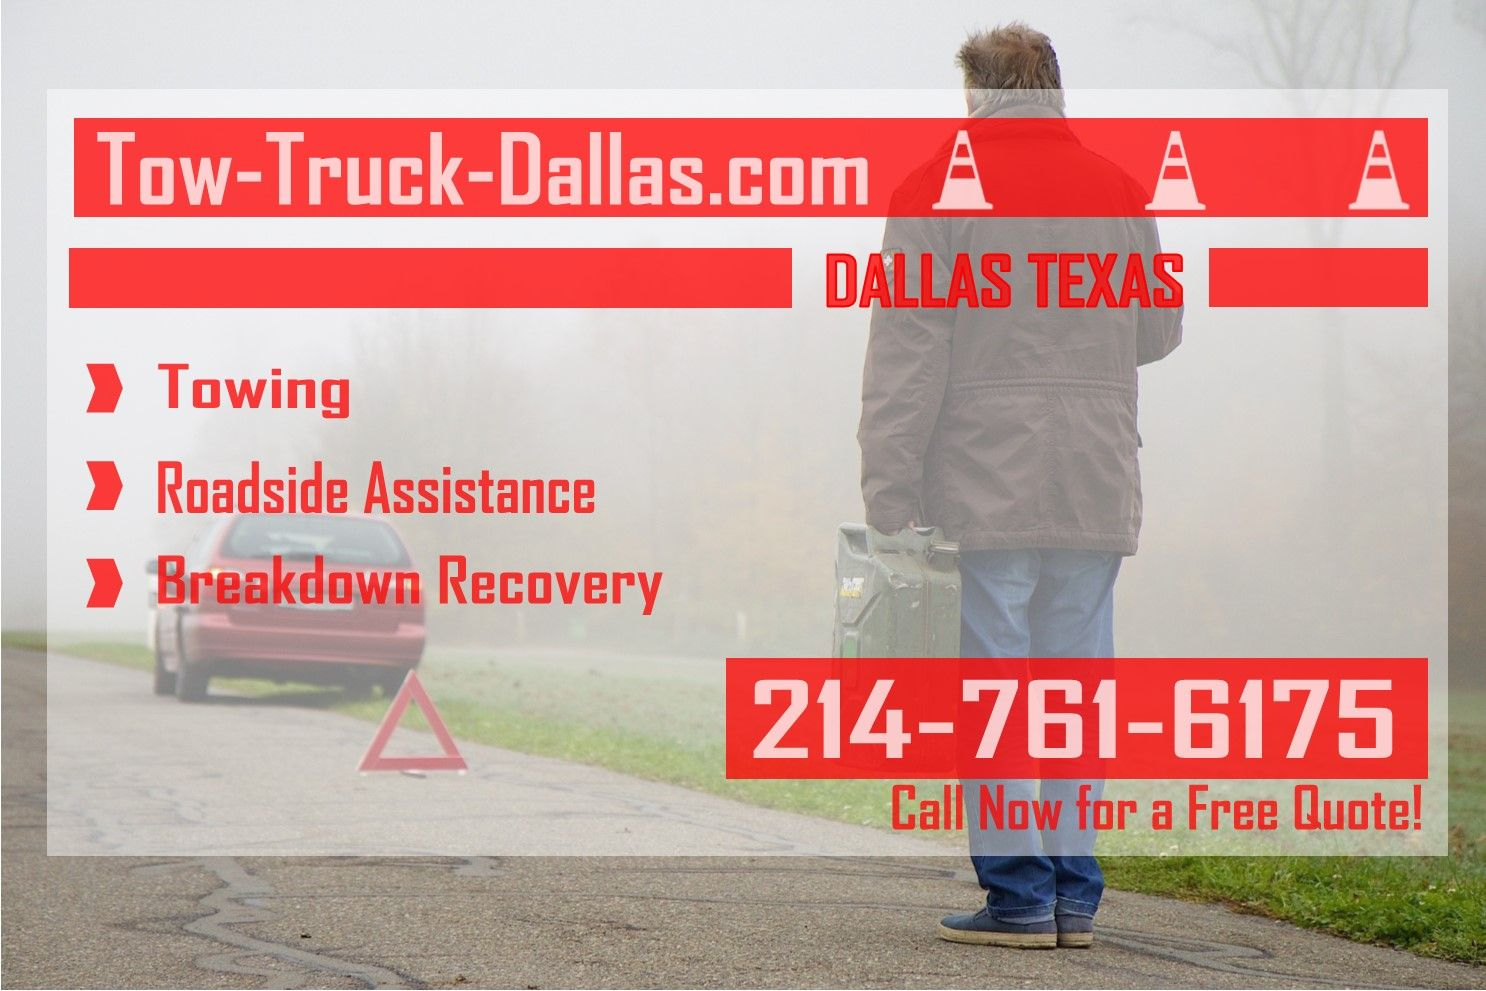 Tow Truck Dallas is proud to announce the opening of our